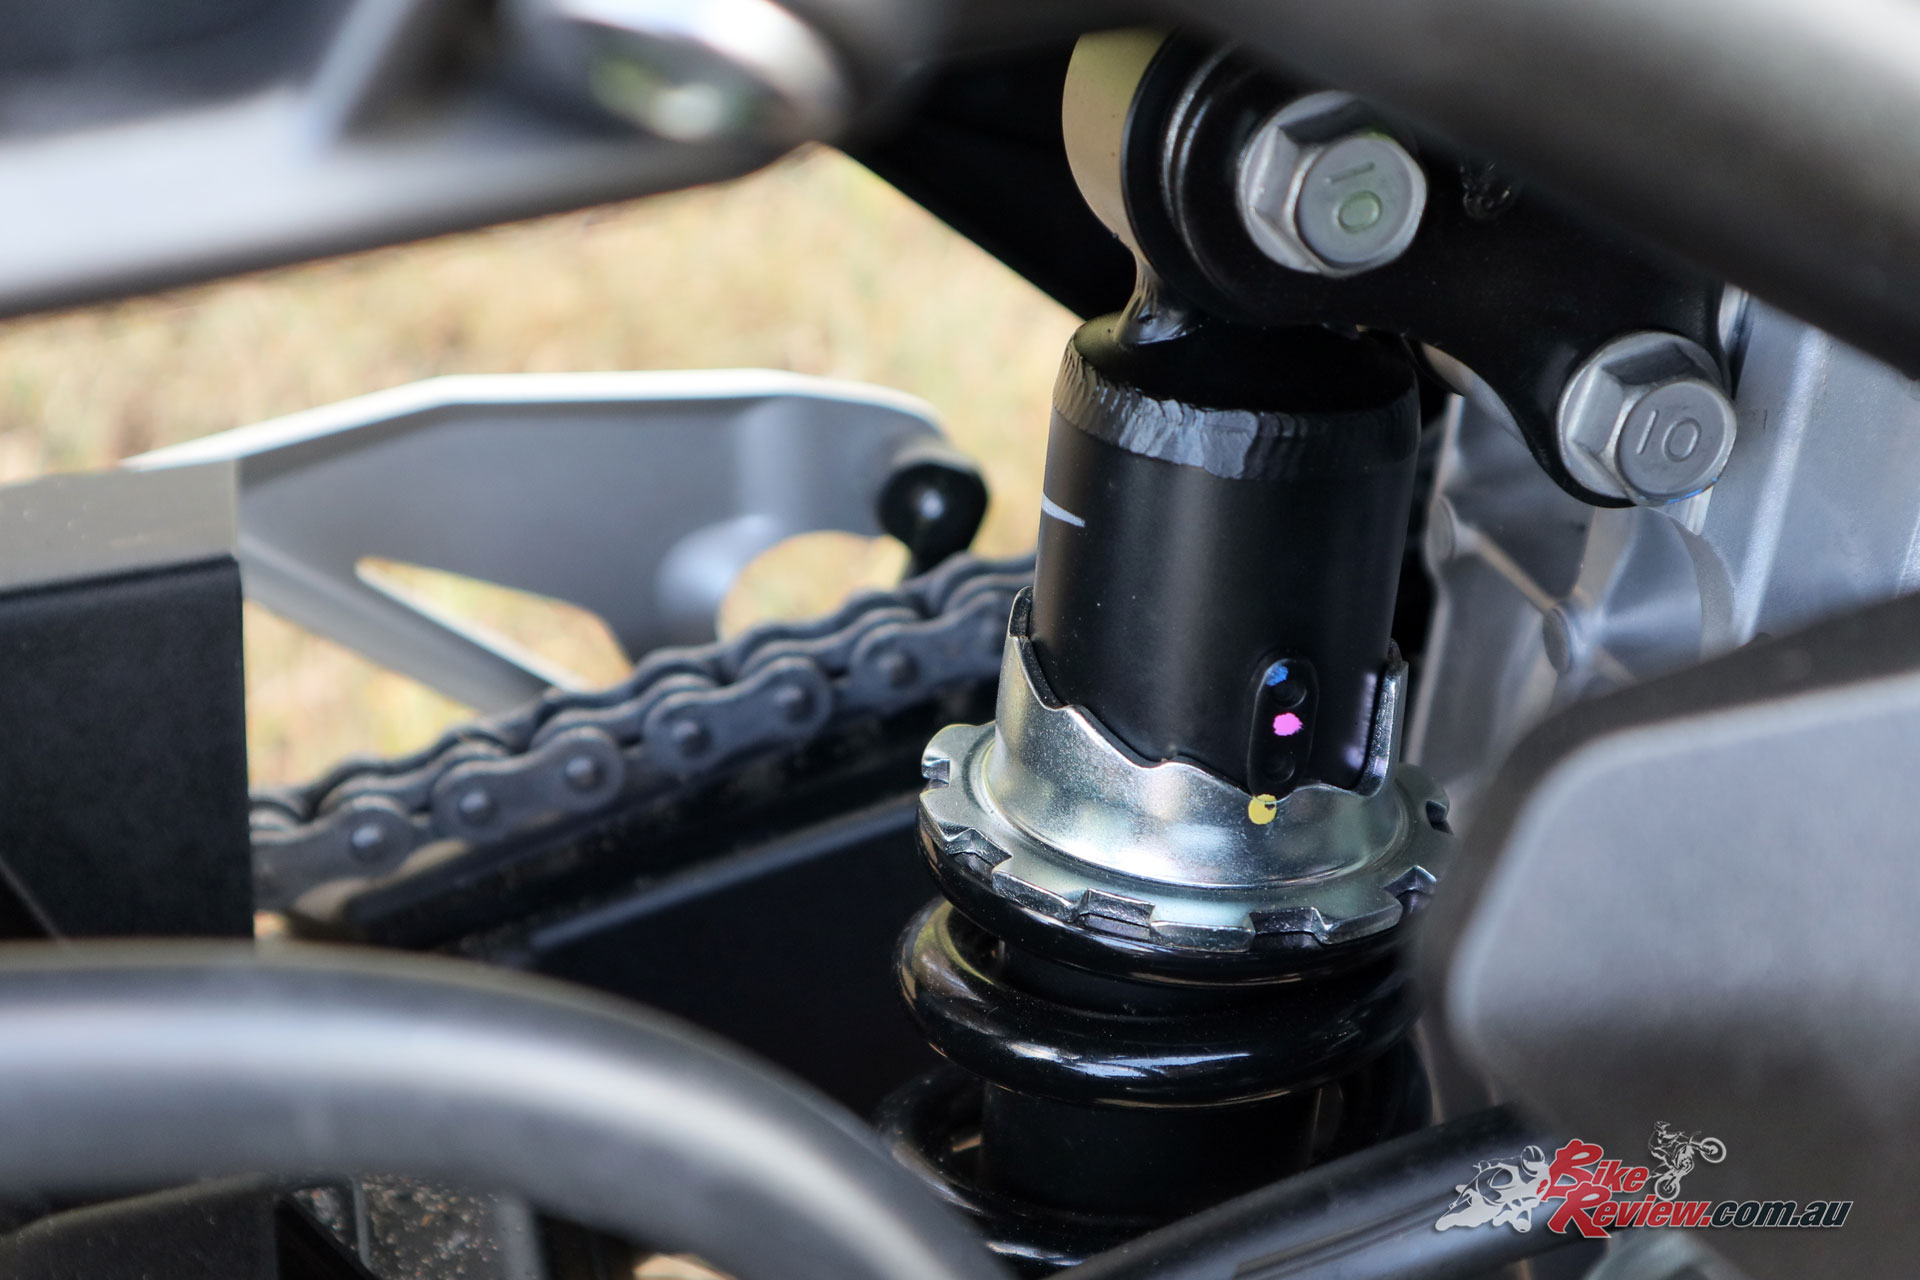 There's only rear preload adjustability, but the front end is extremely well sorted